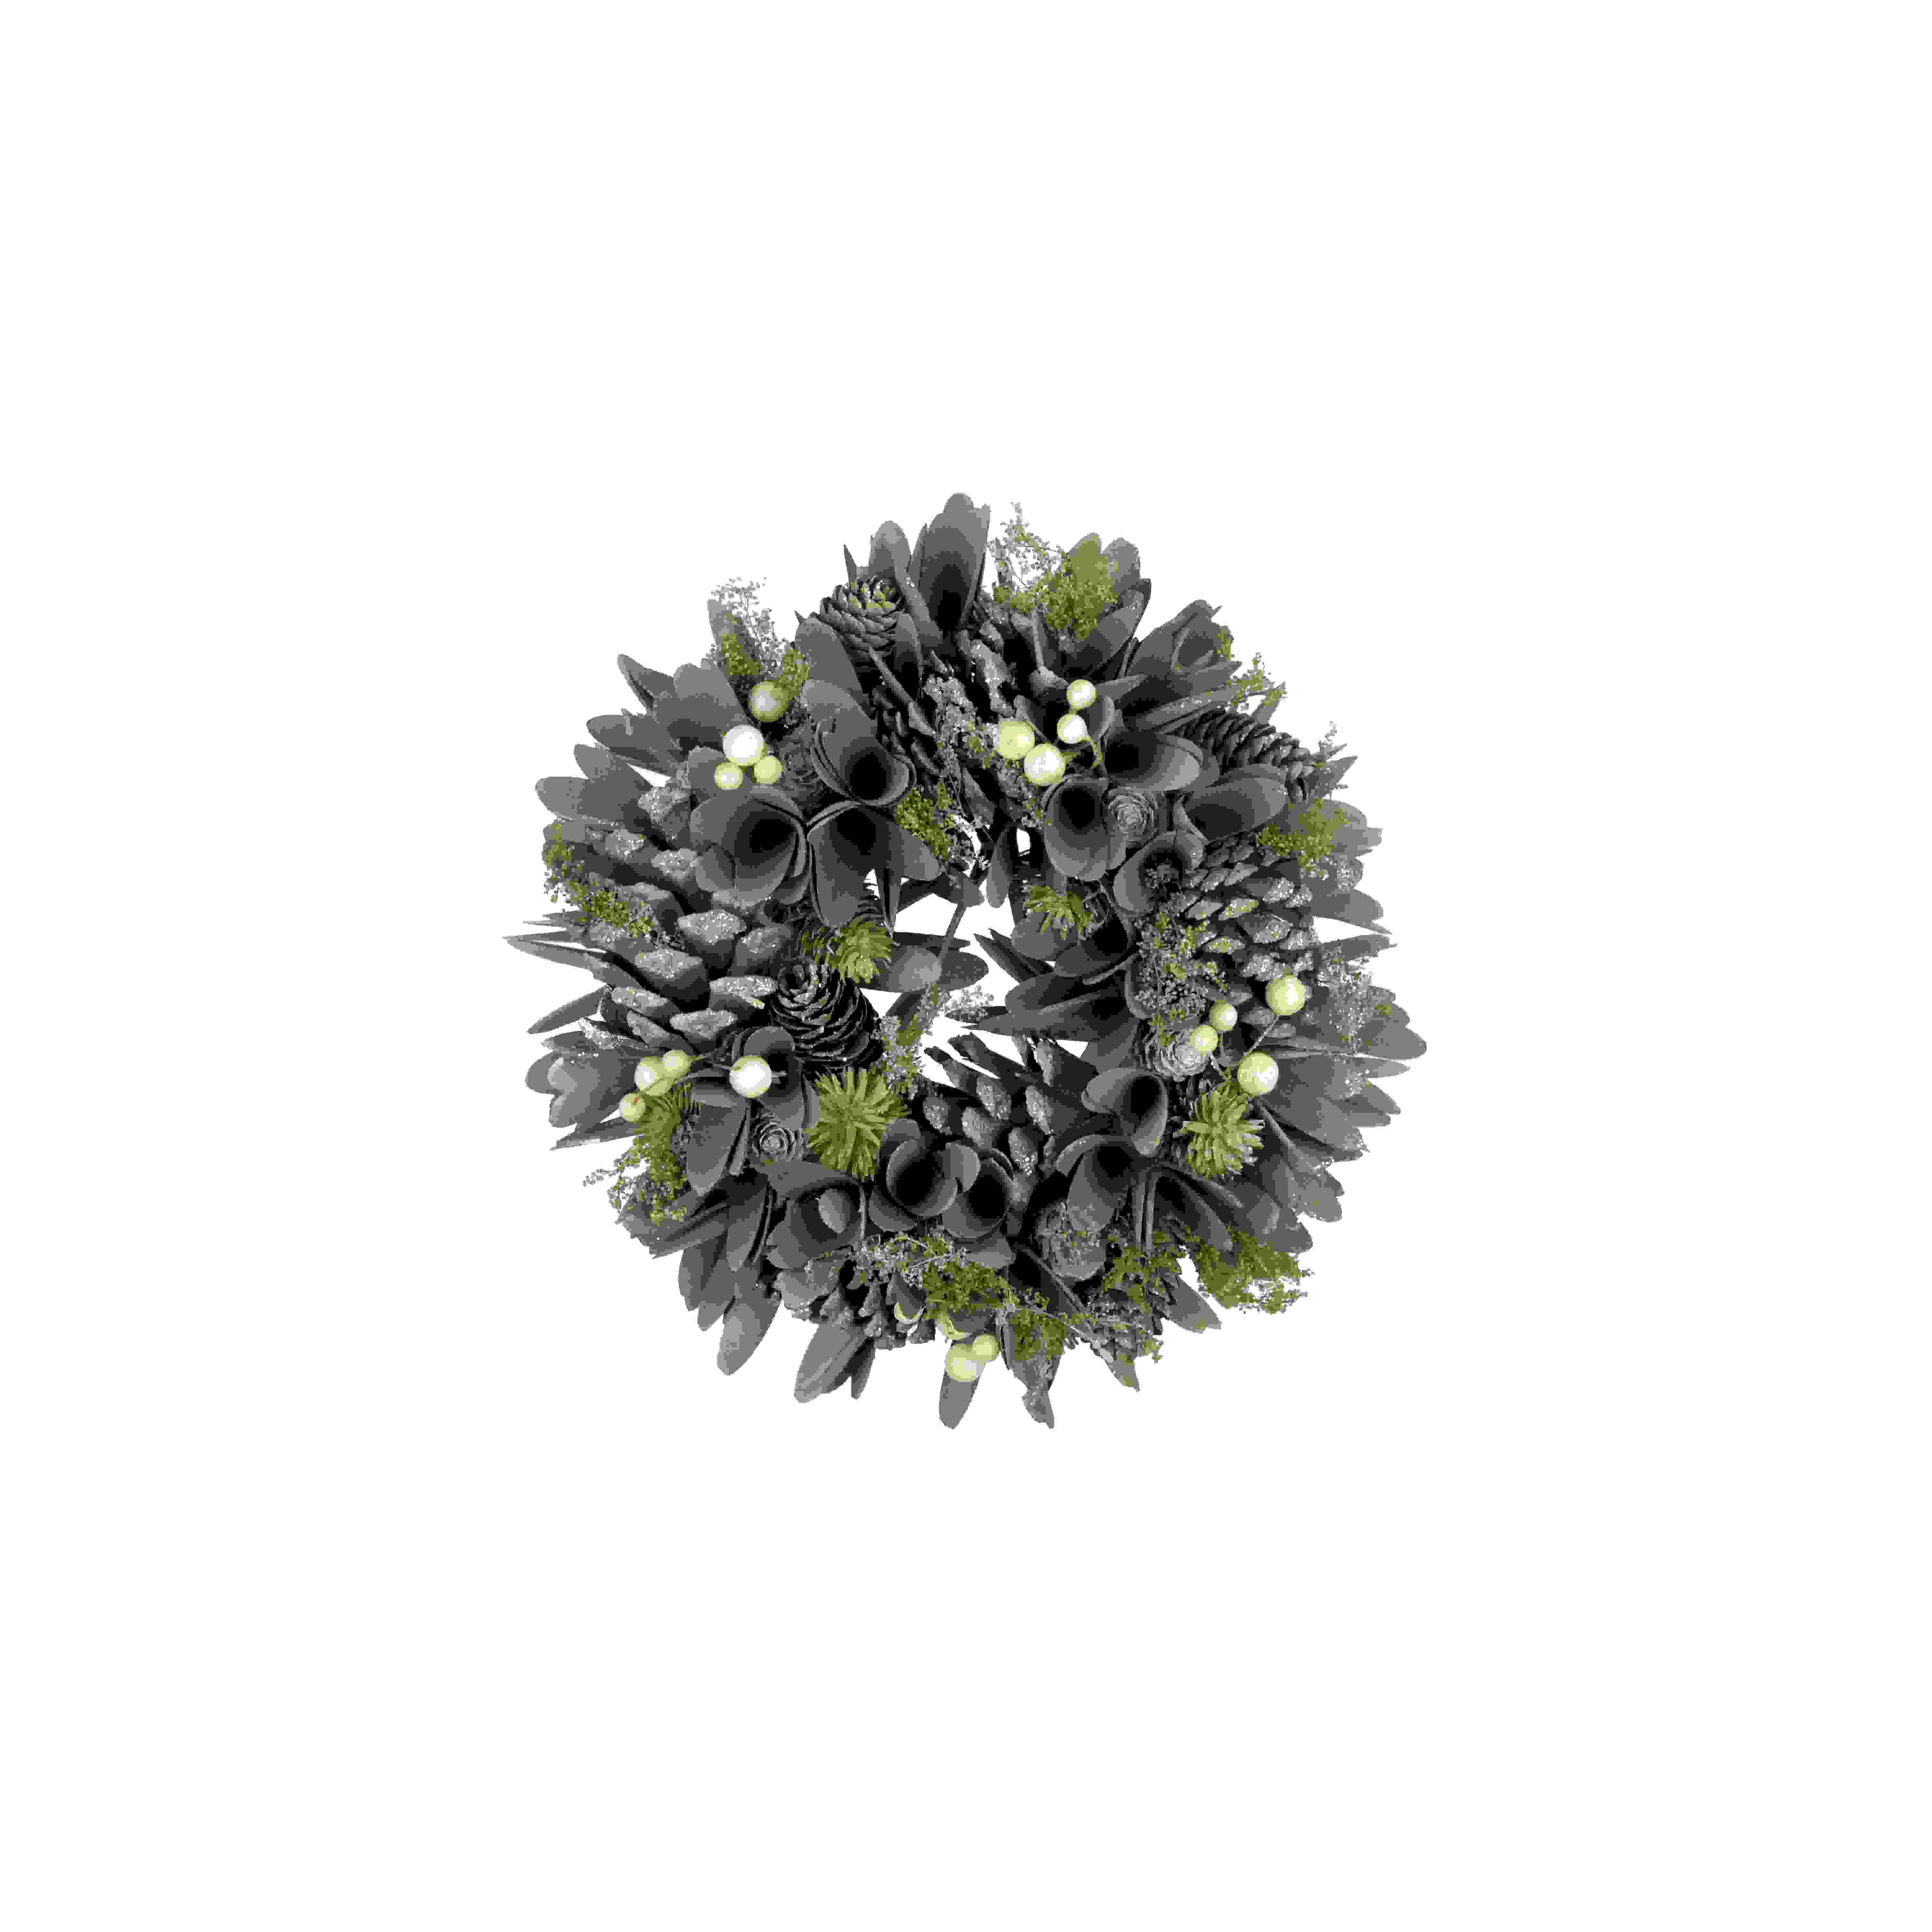 WREATH 27cm MISTLETOE/WOODSHAVE